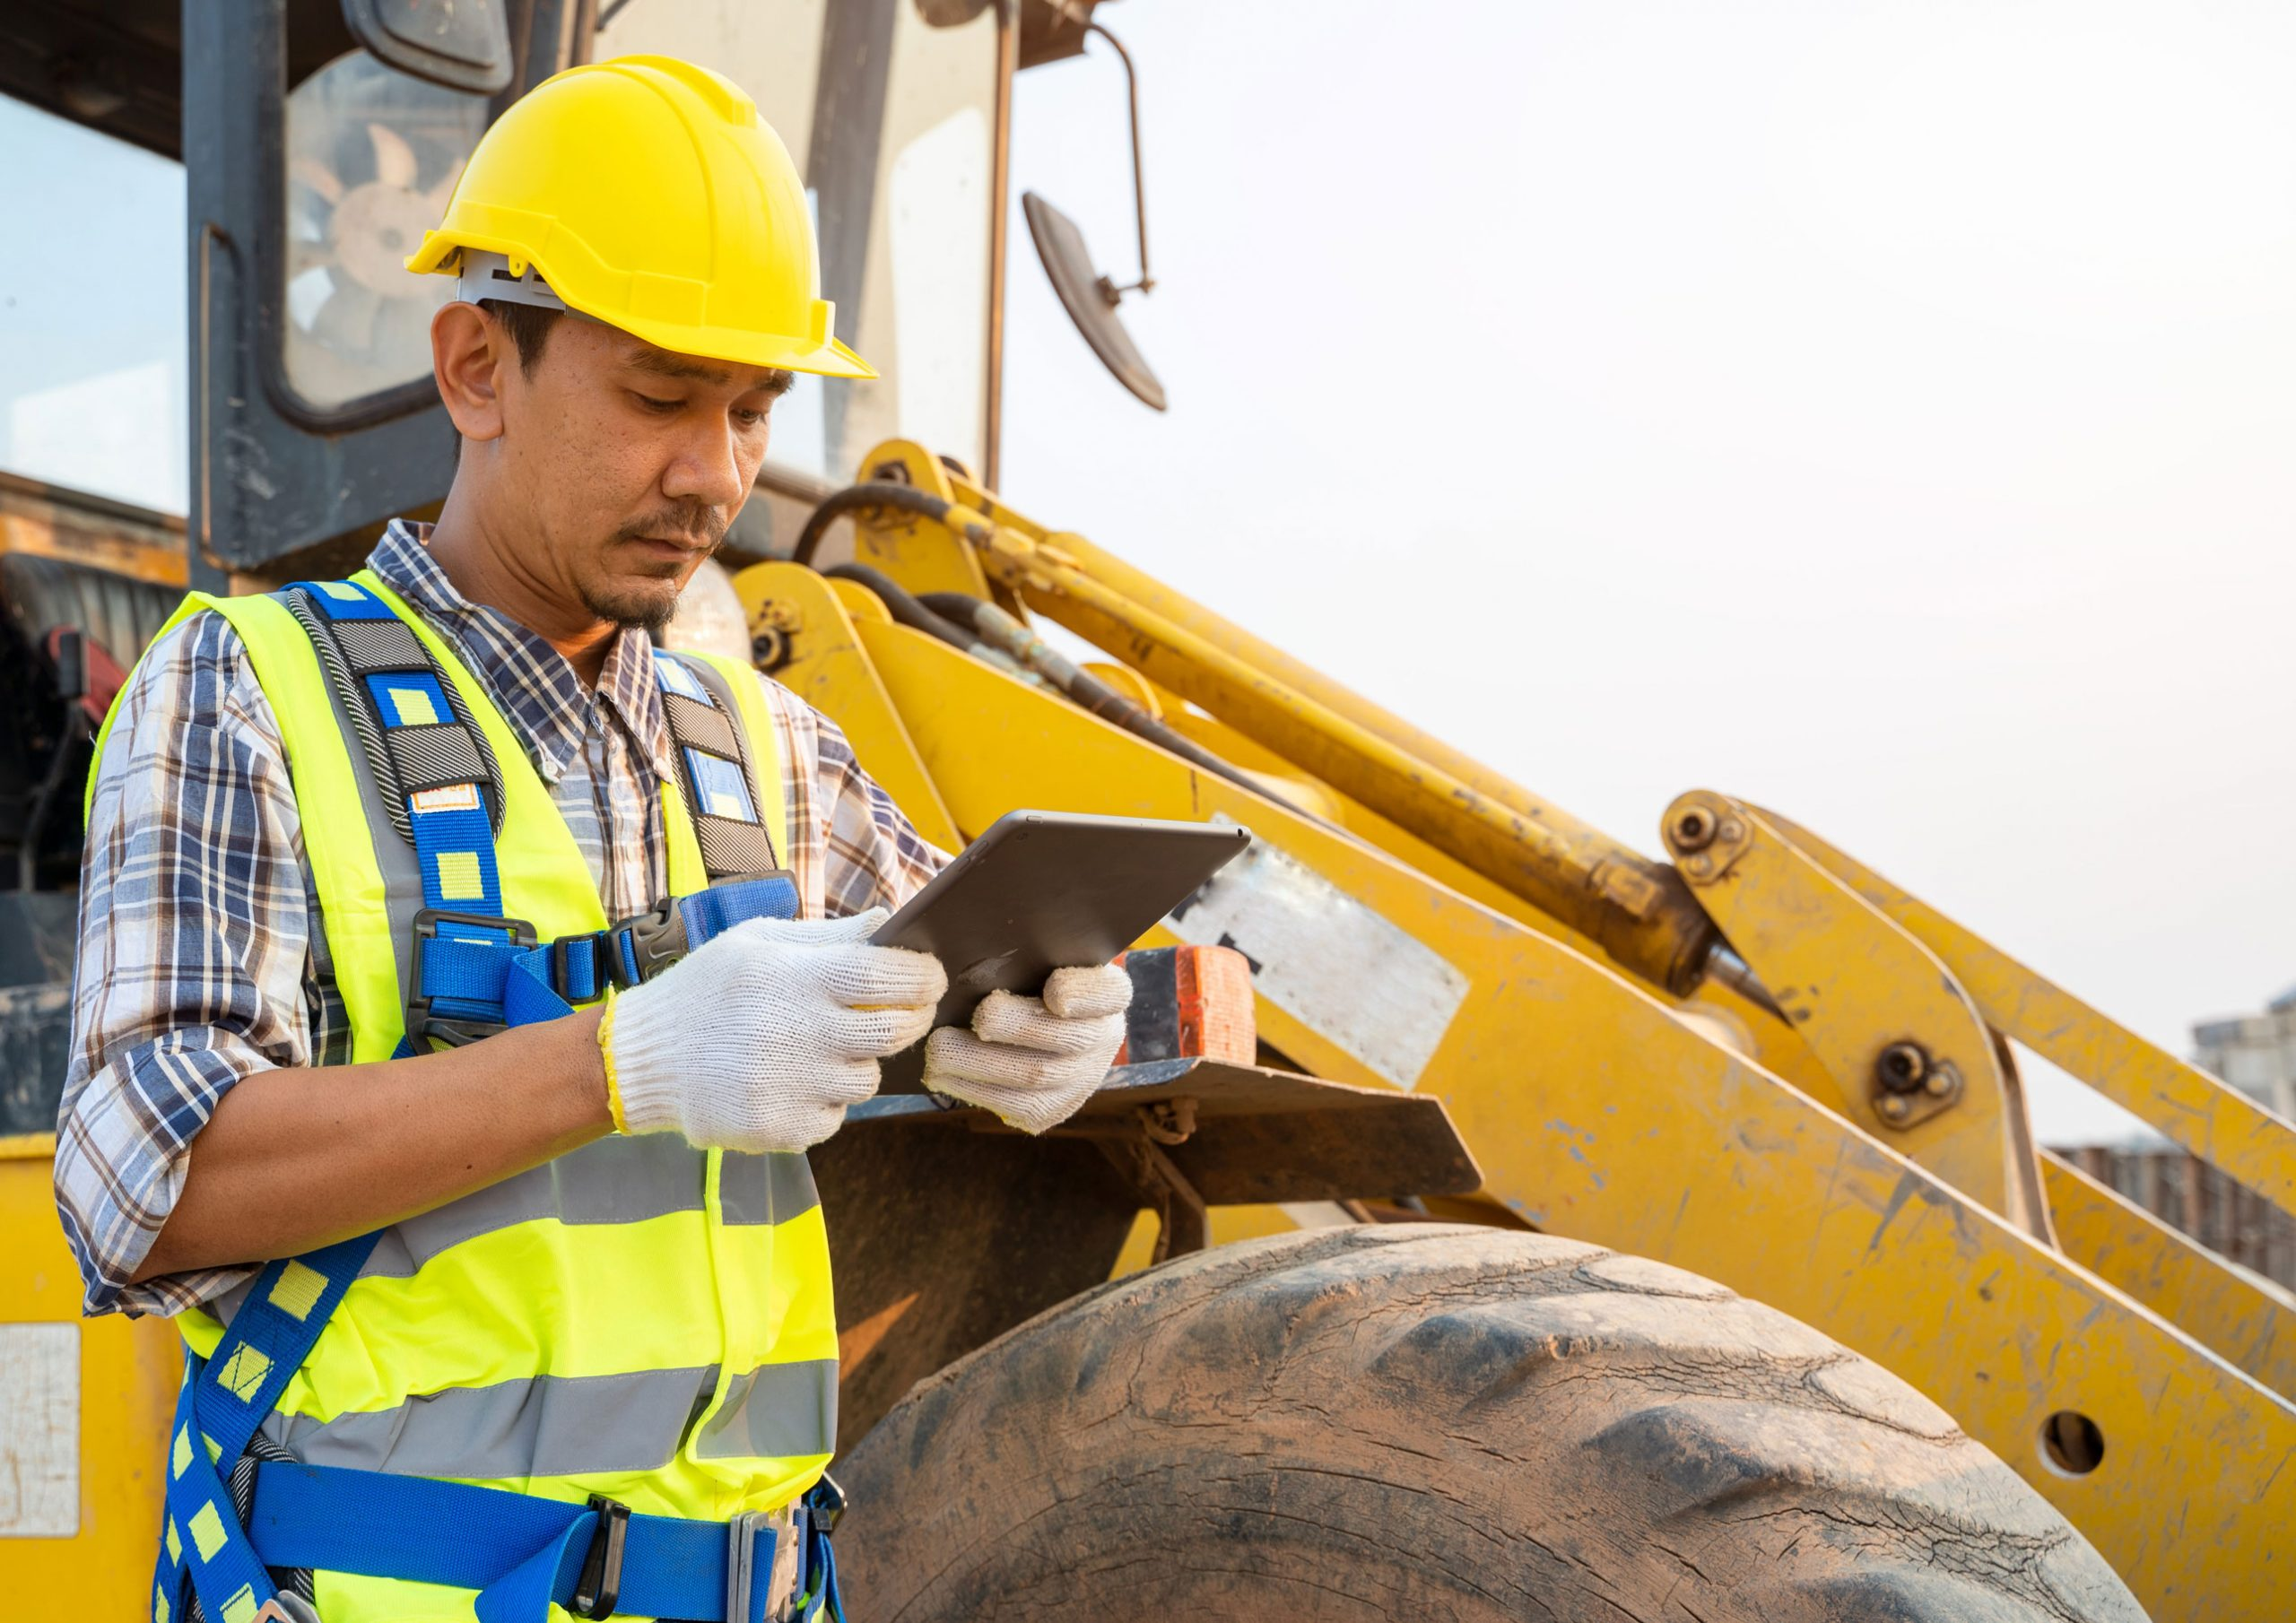 Man inspecting a vehicle with Maximo on a tablet